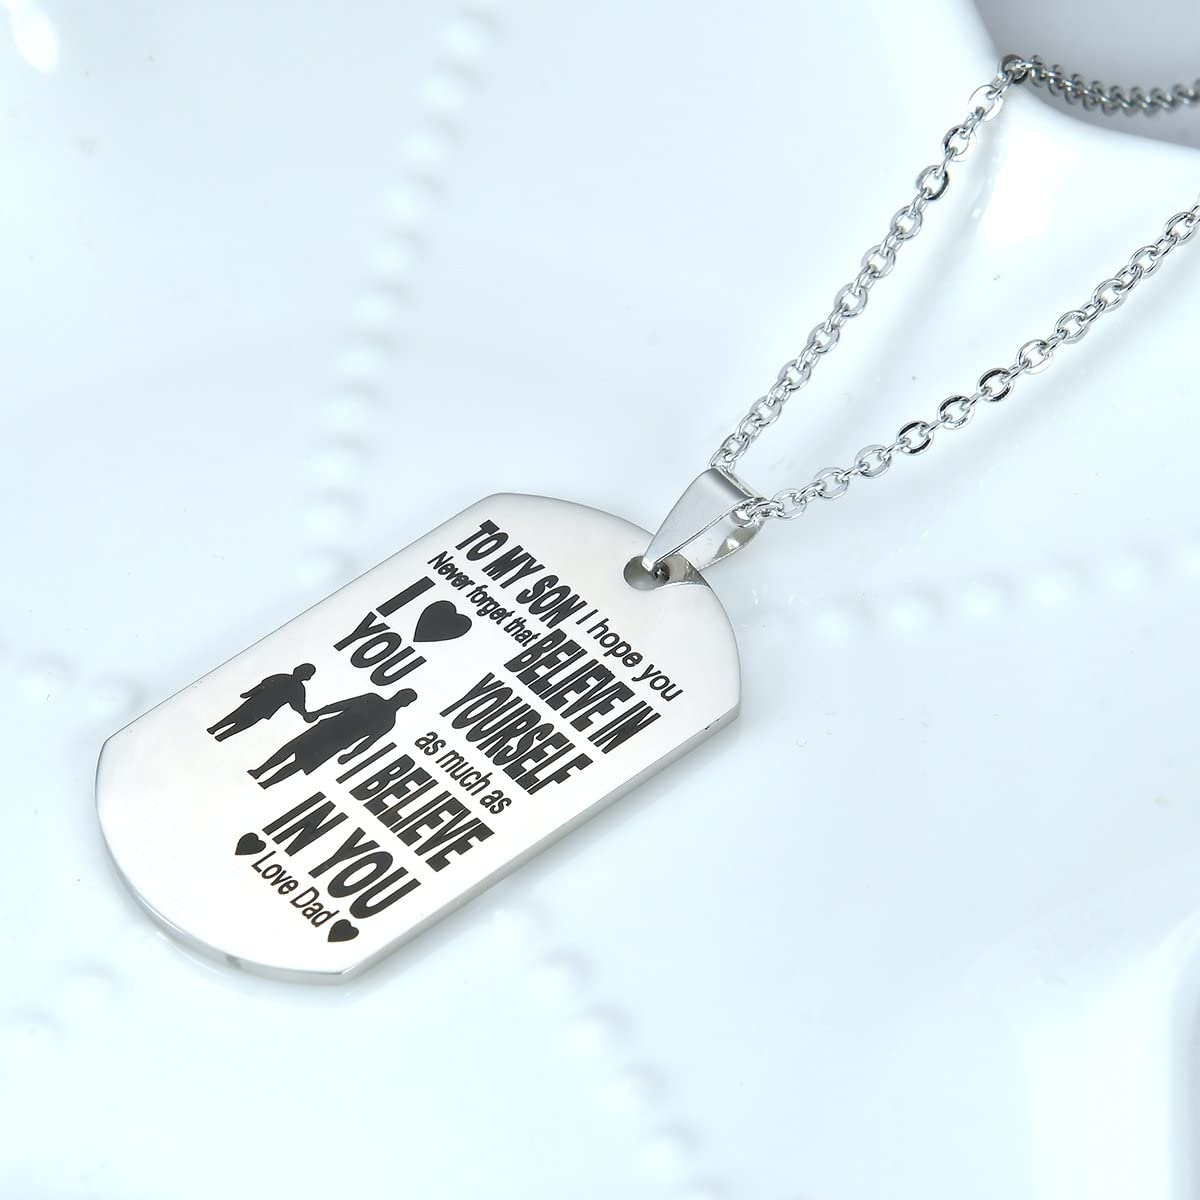 Best gift My Son Dog Tag From Dad Mens Boys Necklaces for Kids Child Teen Love Gift Military Air Force Pendant